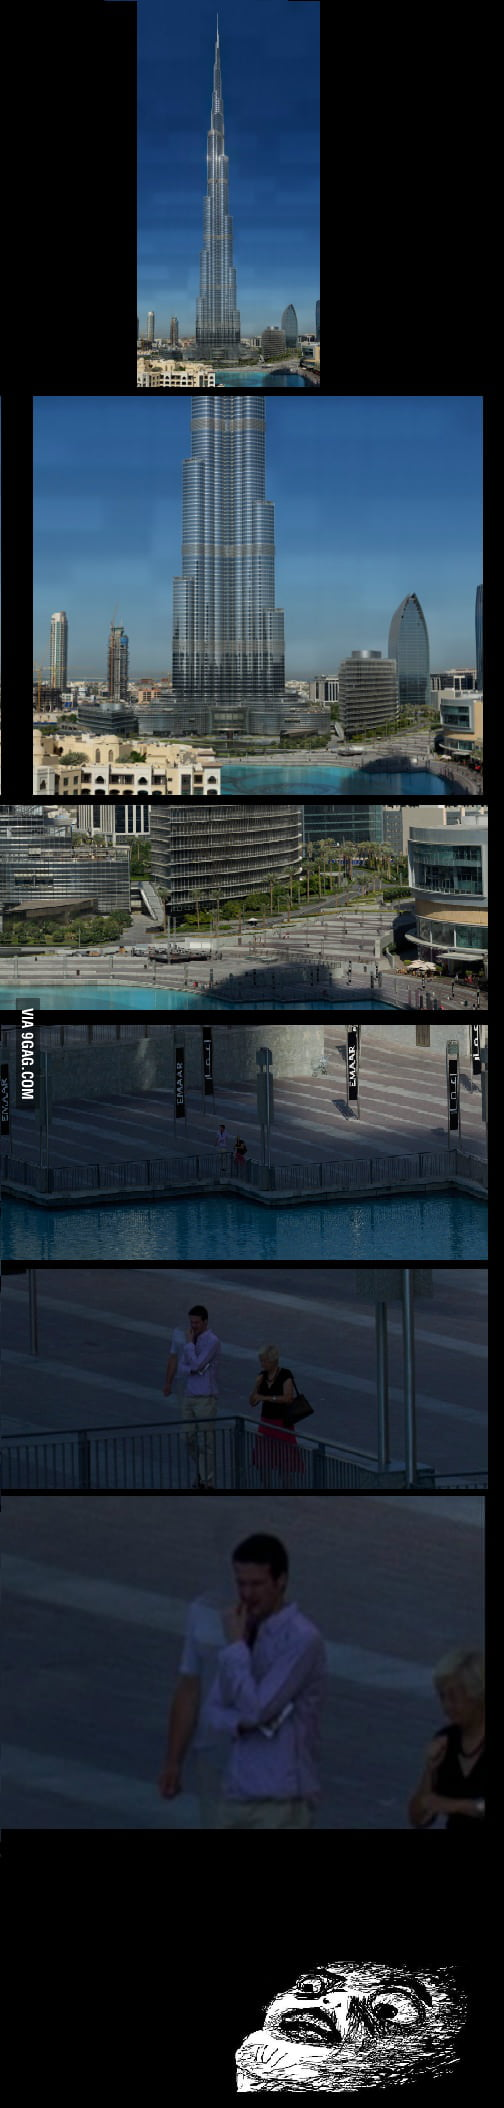 Checking out the Burj Khalifa when suddenly...